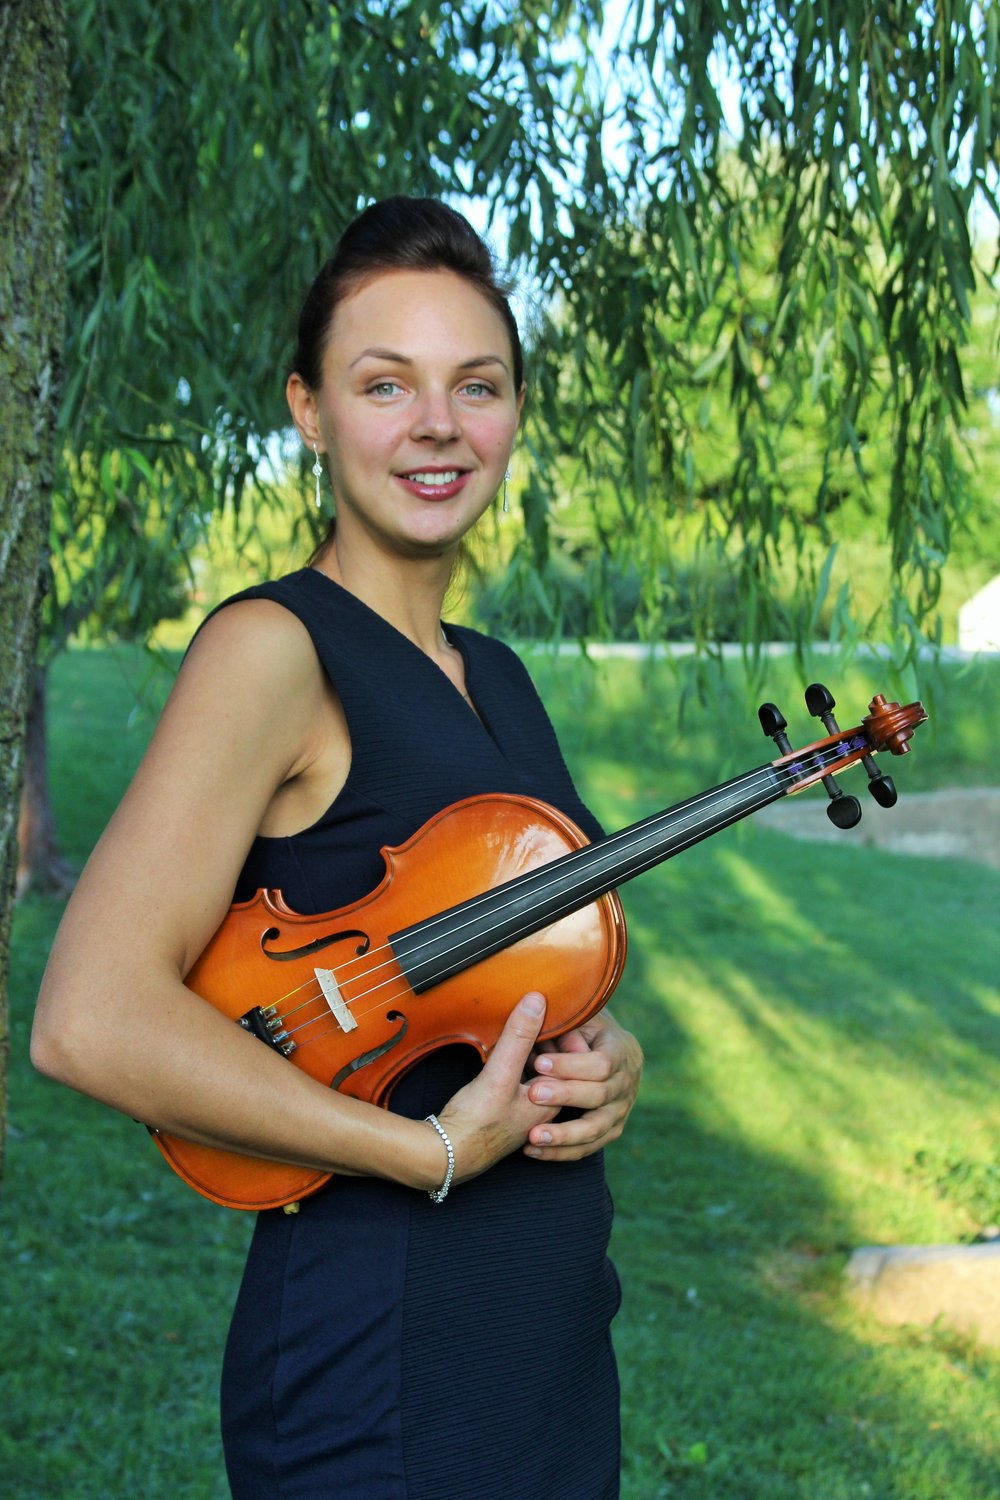 Zhenya Zianouka - Zhenya Zianouka was born in the Republic of Belarus. She grew up among a family of dedicated musicians with her mother, a music teacher and conductor, and father, an accomplished composer and performer. Zhenya started playing the violin at the age of six. She attended the Oginsky School of Music in her hometown of Molodechno, where she studied violin, piano, and music theory for eight years. During her studies, she participated in classical violin competitions and appeared on stage, performing contemporary music on the electric violin. After her graduation, Zhenya was accepted into the prestigious Minsk State Linguistic University, where she was recognized for her scholastic talents and foreign language proficiency. Upon moving to the United States, Zhenya was awarded a scholarship to study Violin Performance at Hood College in Frederick MD, where she held the position of Concert Master in the university string ensemble. Her awards and acknowledgements include  the prestigious Marie A. Markow Excellence in Music Prize and The Ardine and Phyllis Gorden Music Scholar Award.A classically trained artist, Zhenya Zianouka offers individualized instruction on the violin. She tailors the curriculum according to the personal goals of each student. Zhenya helps unleash musical abilities while providing a solid classical foundation. A number of her students sit First Chair Violin in youth orchestras, with others having continued their musical pursuits through higher education.Zhenya specializes in teaching all levels of violin,  beginner to advanced, ages 4 and up.